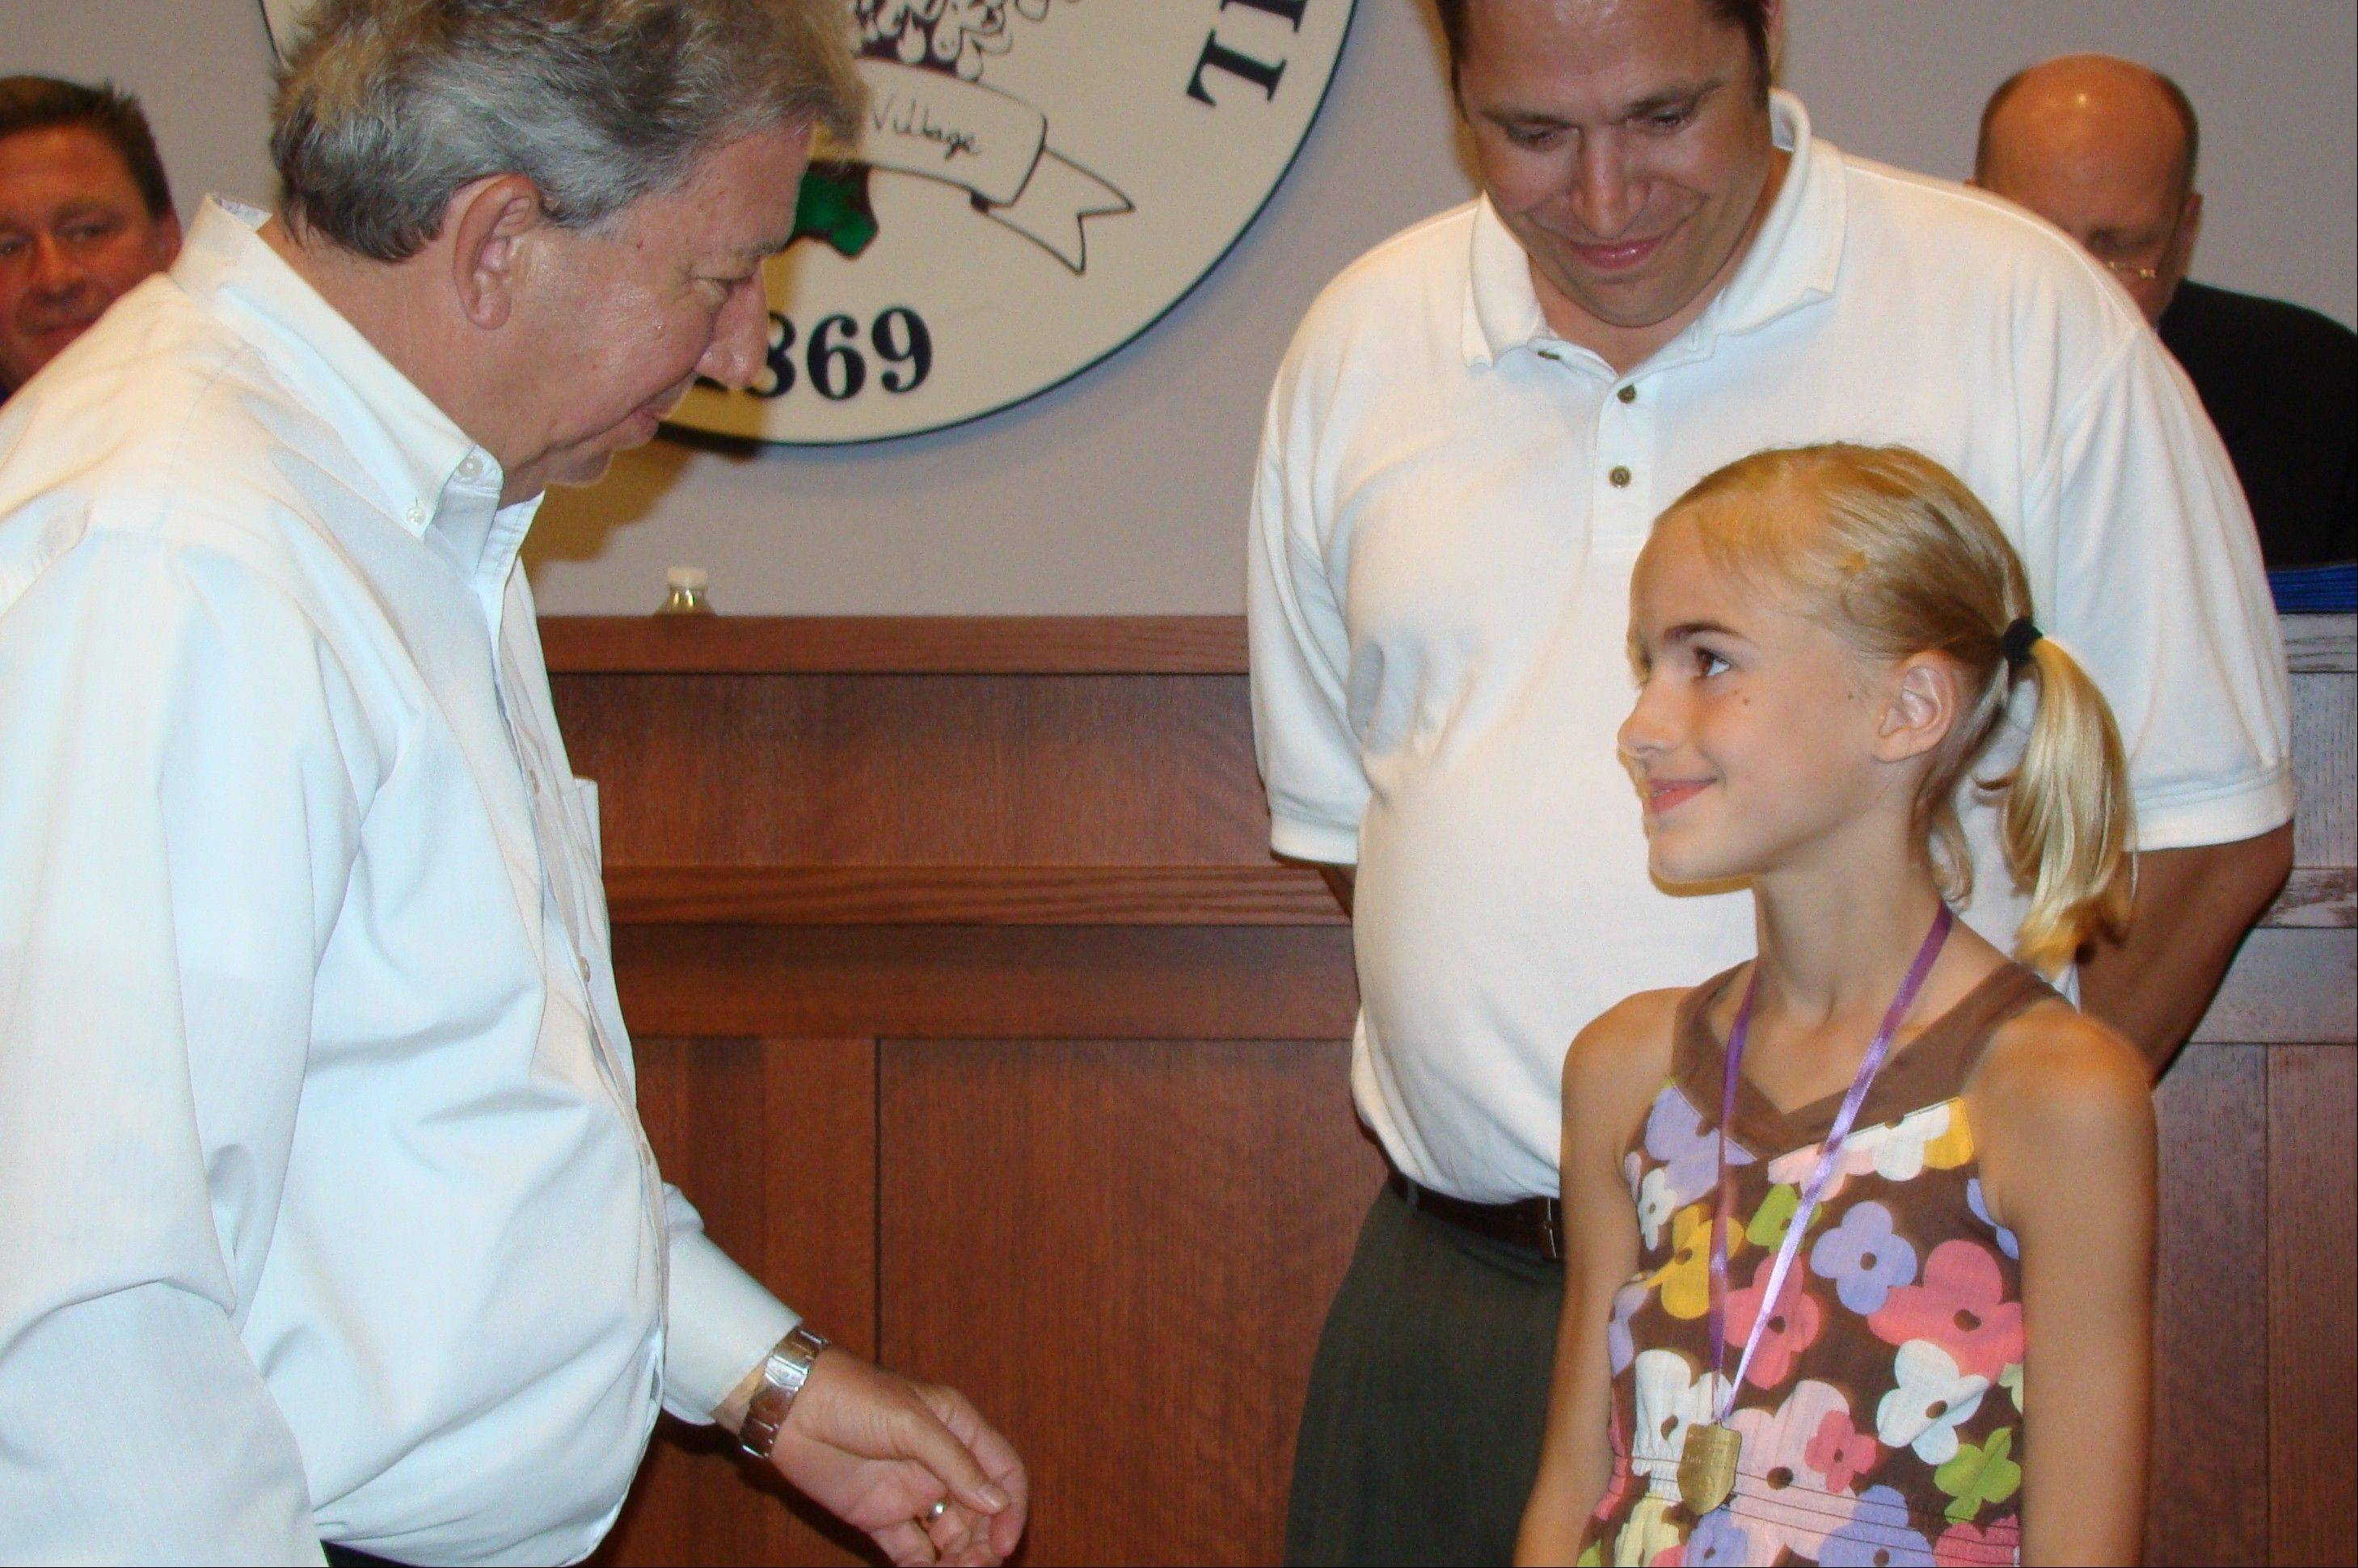 Julia Pate, 8, with her father, Jay, receives a medal for good character from Lombard Trustee Dan Whittington.